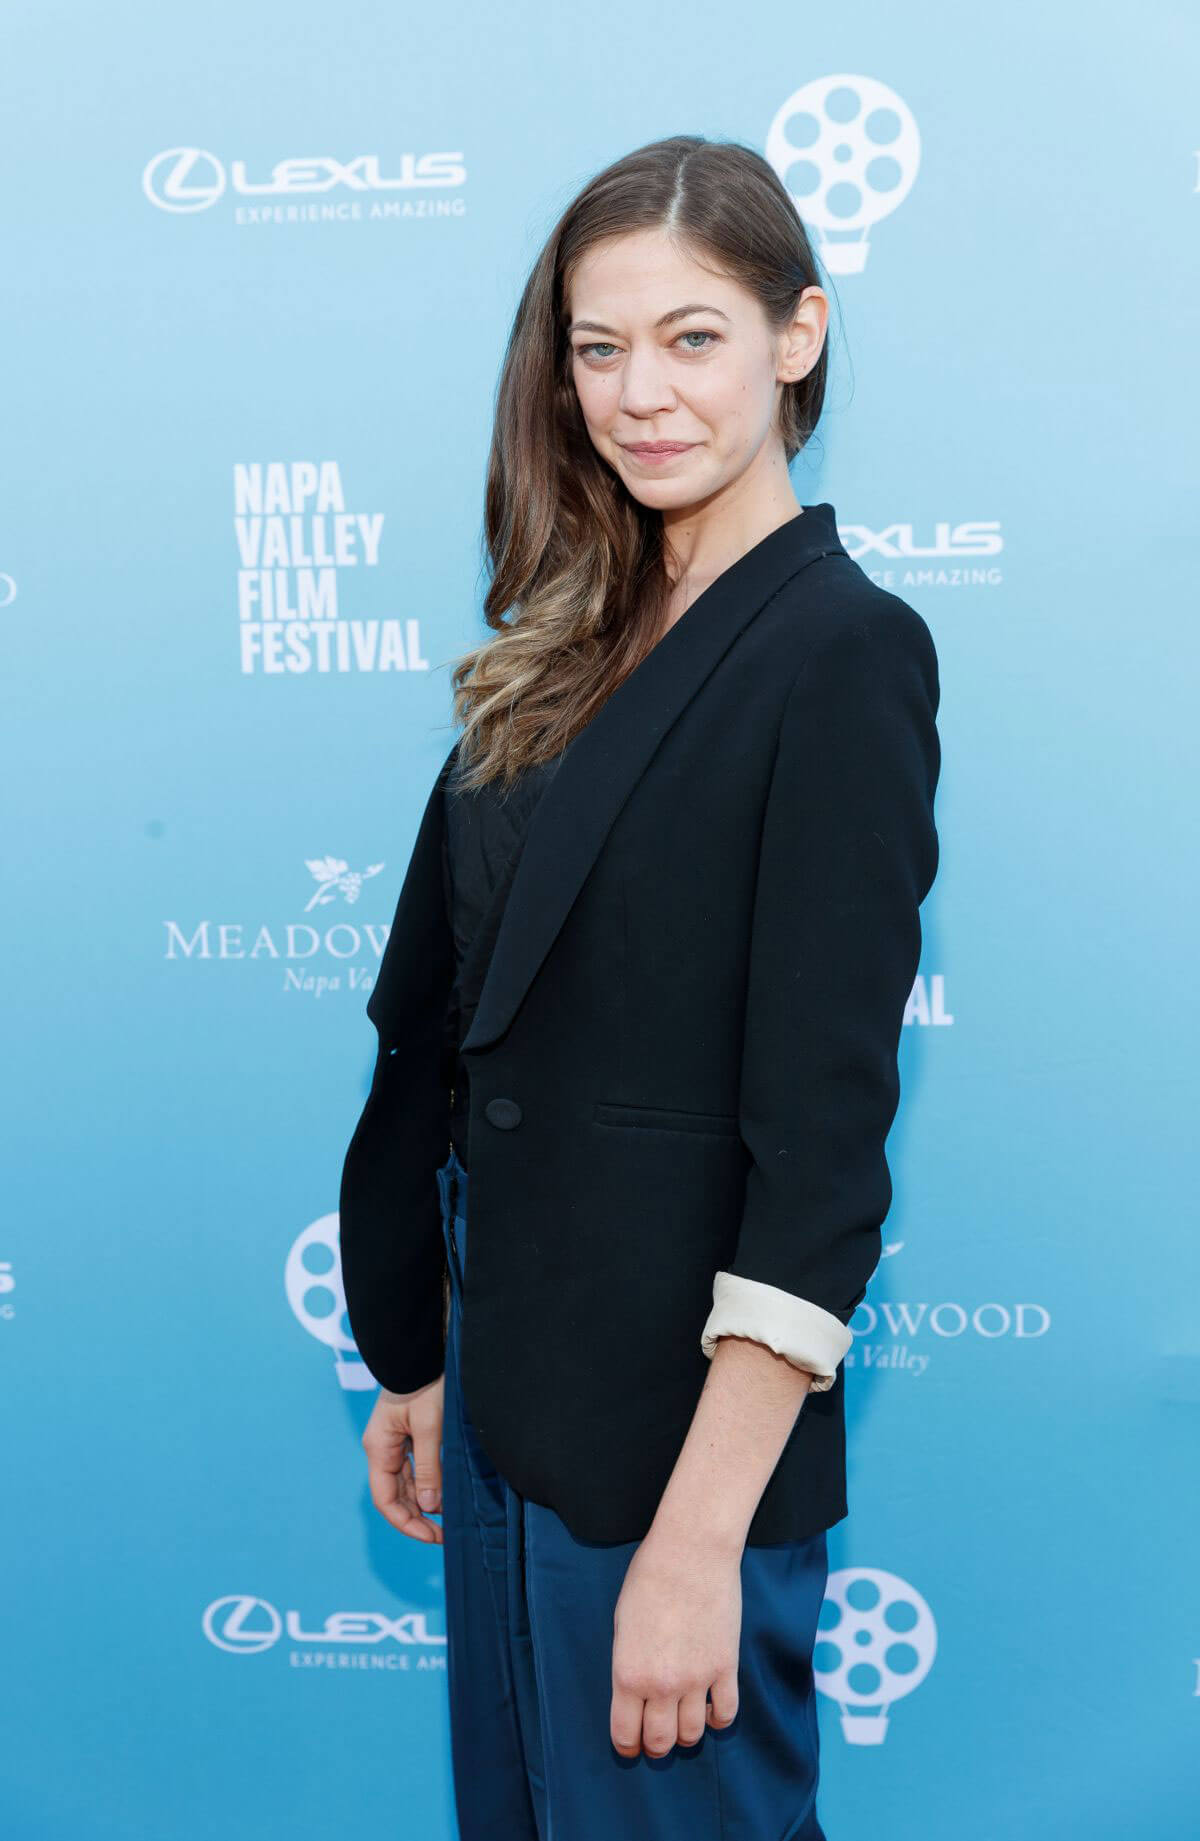 Analeigh Tipton Stills at 2017 Napa Valley Film Festival